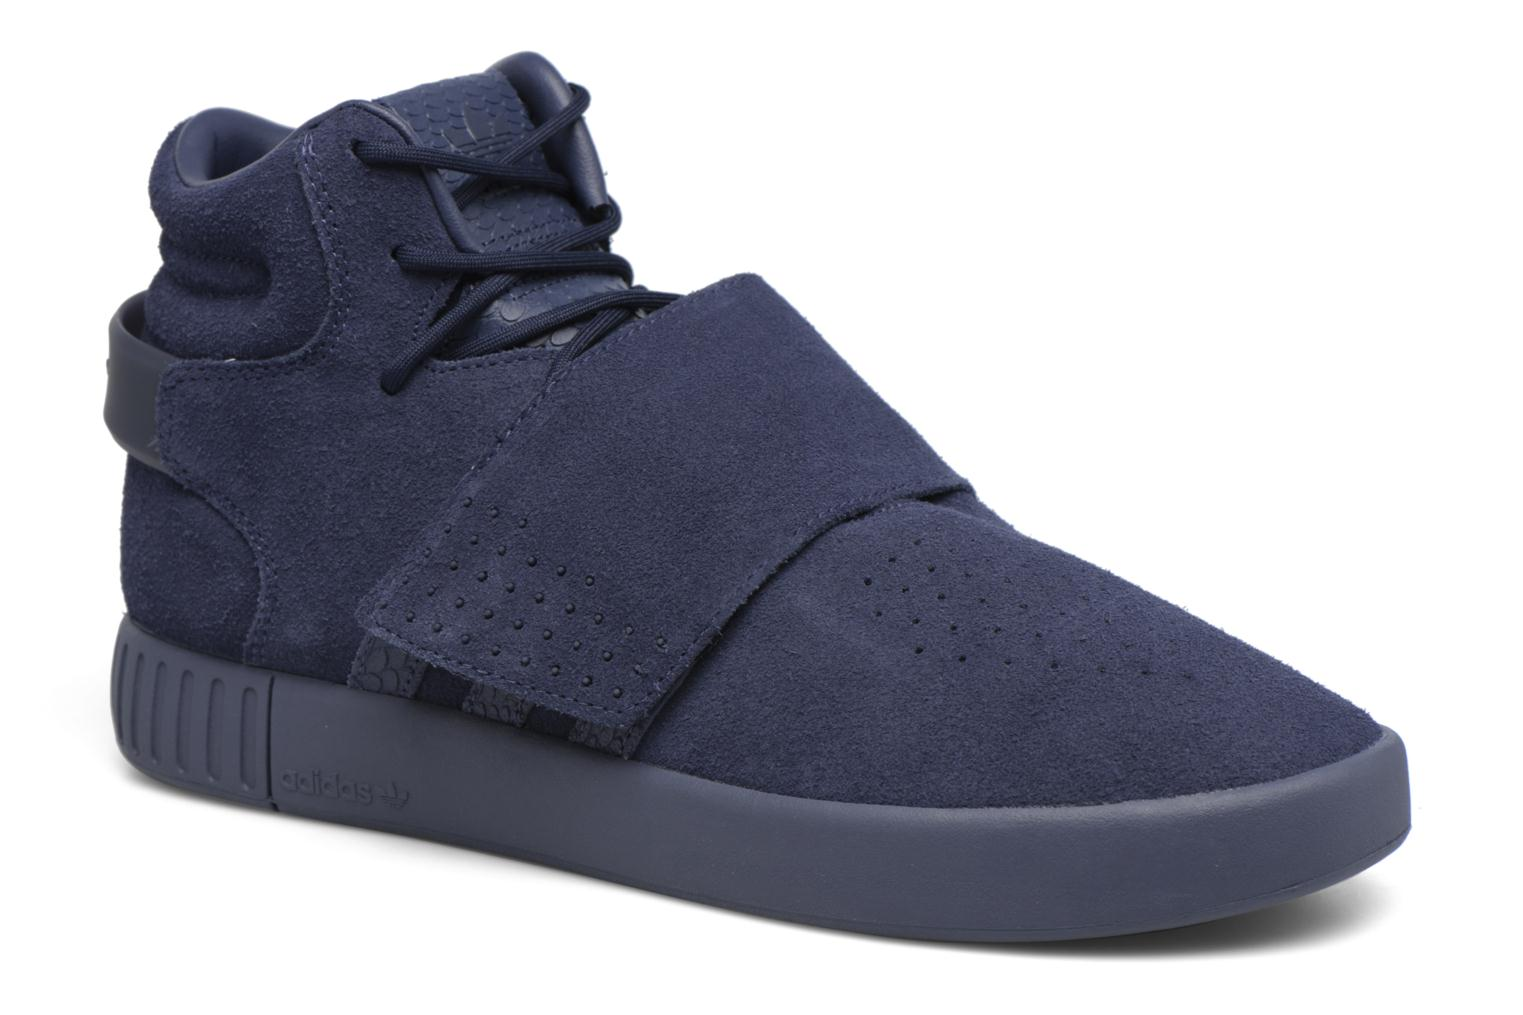 Baskets Adidas Originals Tubular Invader Strap Bleu vue détail/paire